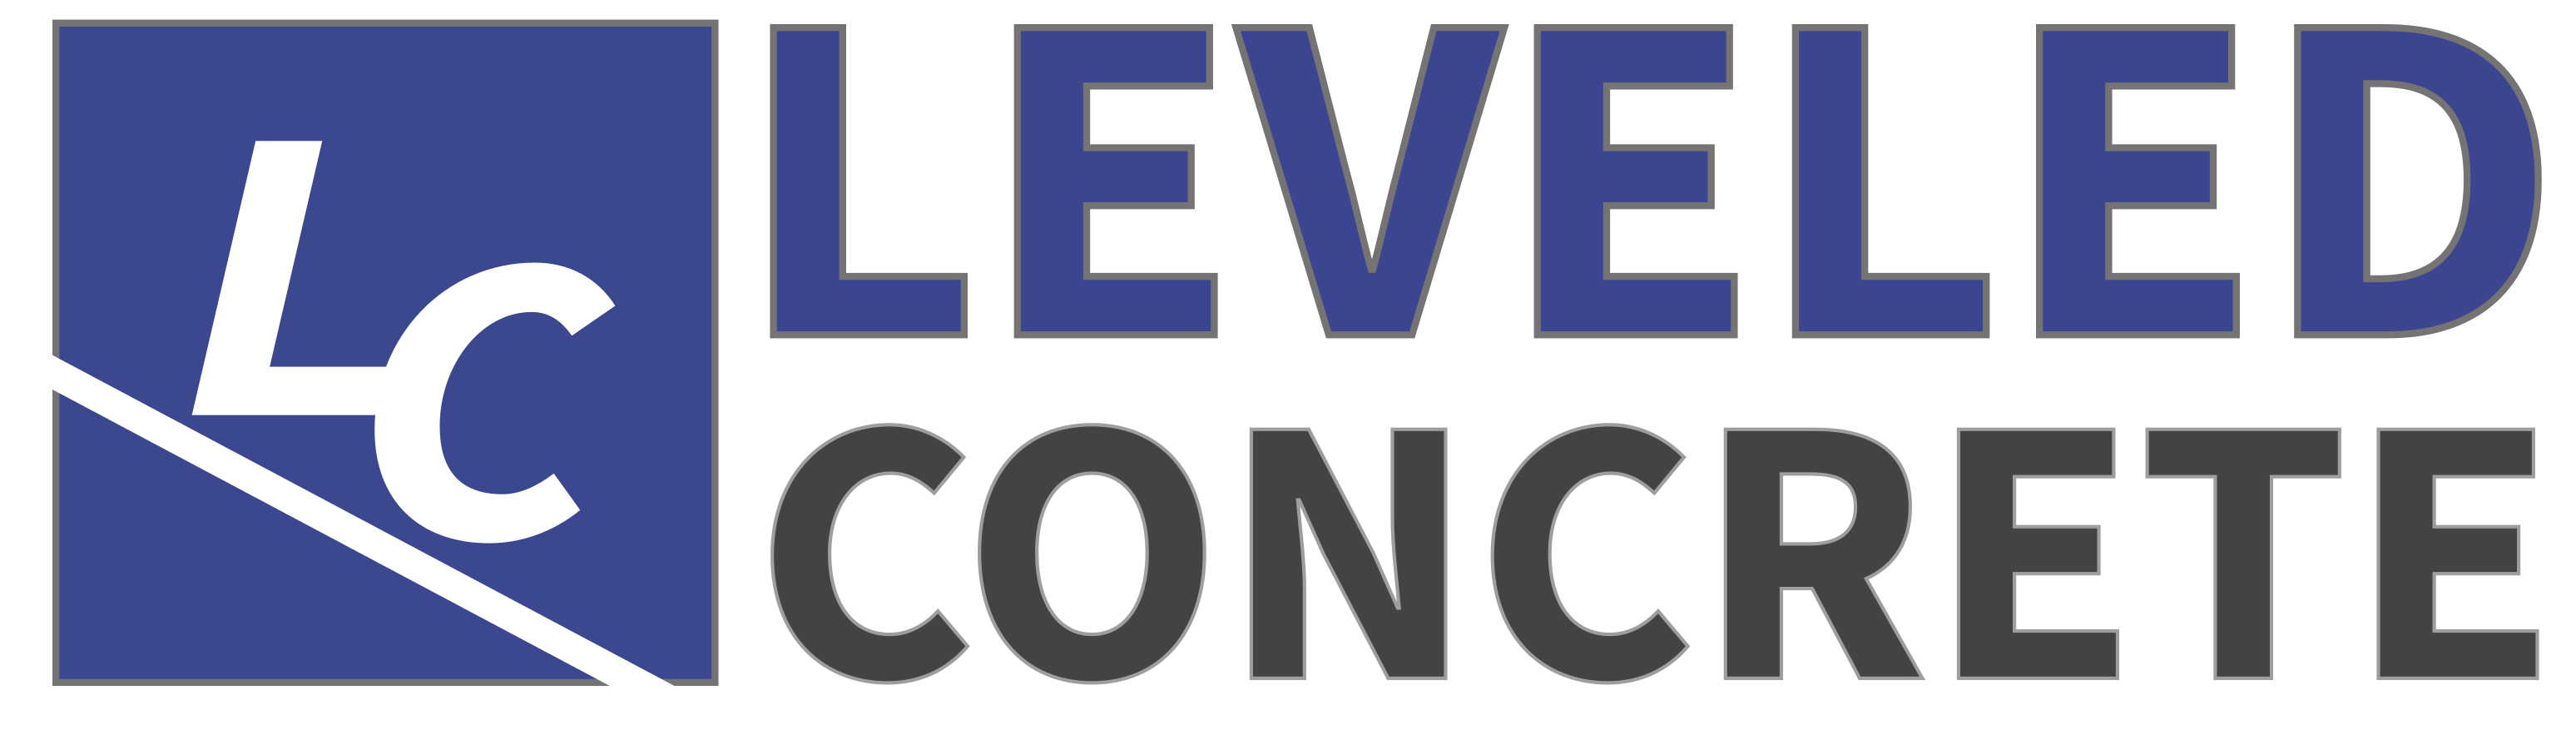 Leveled Concrete: Houston's Concrete #1Concrete Raising and Leveling Company